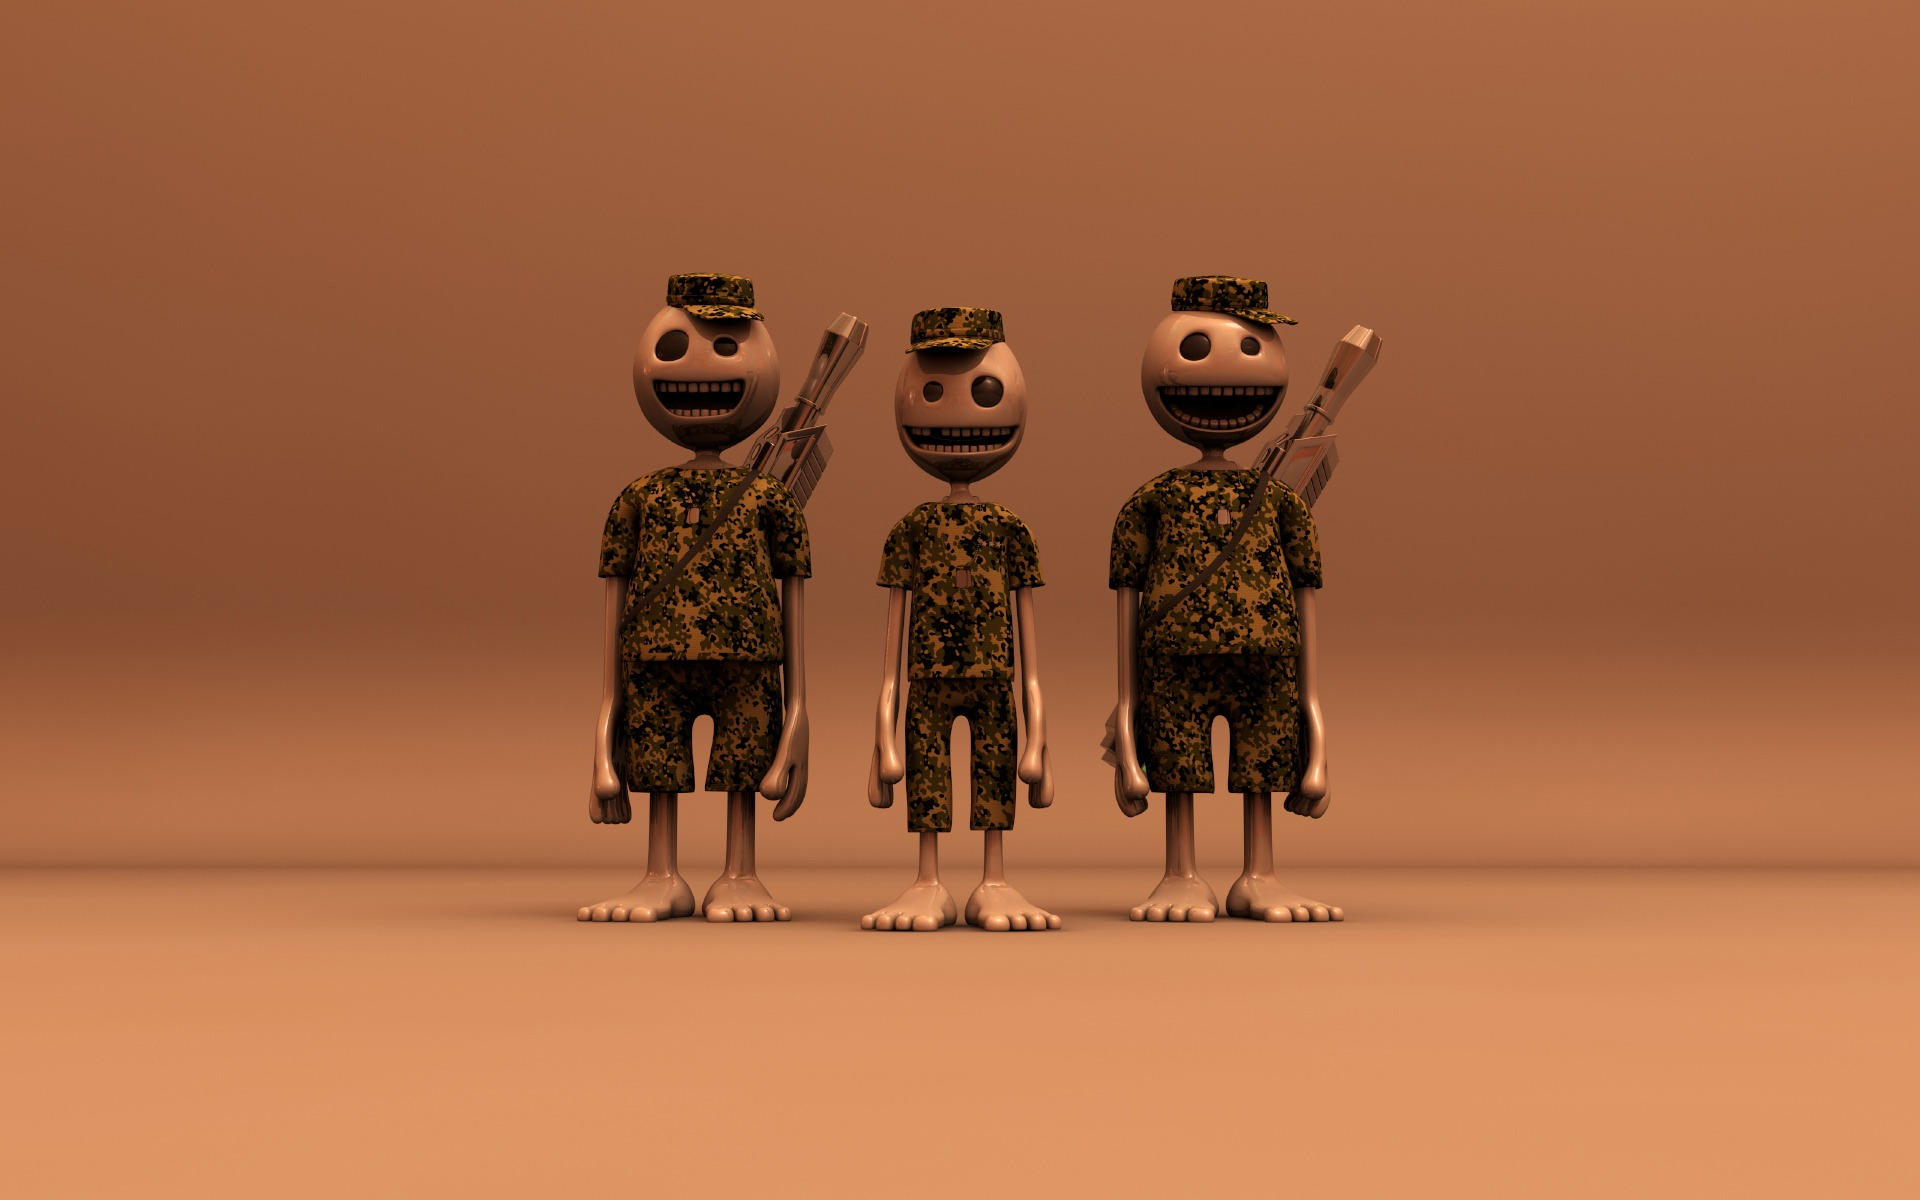 Army Group Wallpaper 3D Characters Wallpapers